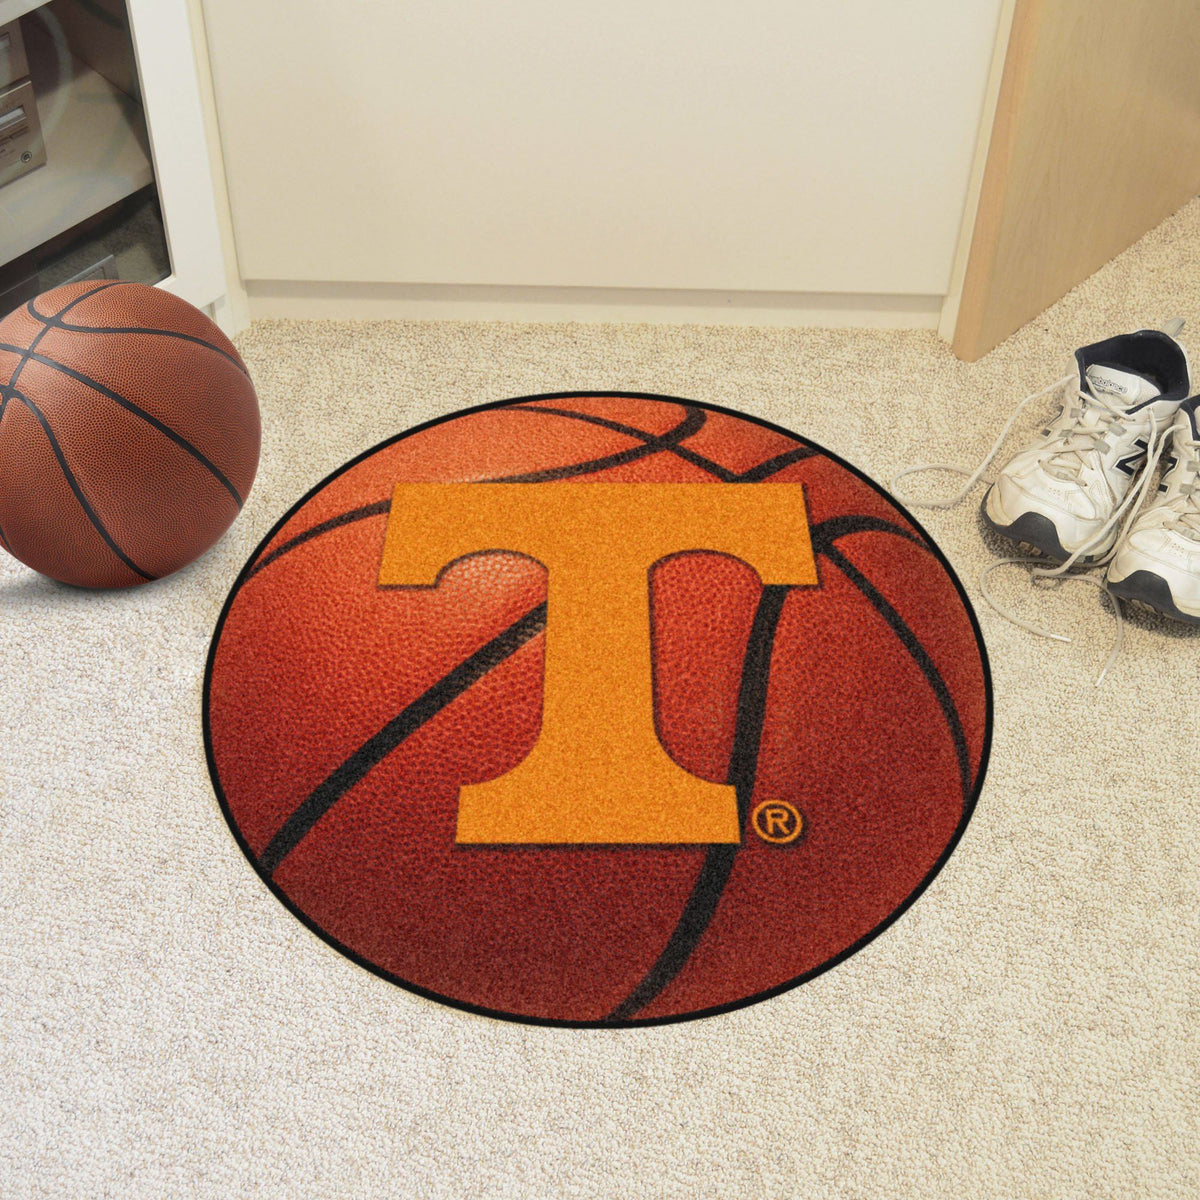 Collegiate - Basketball Mat: T - Z Collegiate Mats, Rectangular Mats, Basketball Mat, Collegiate, Home Fan Mats Tennessee